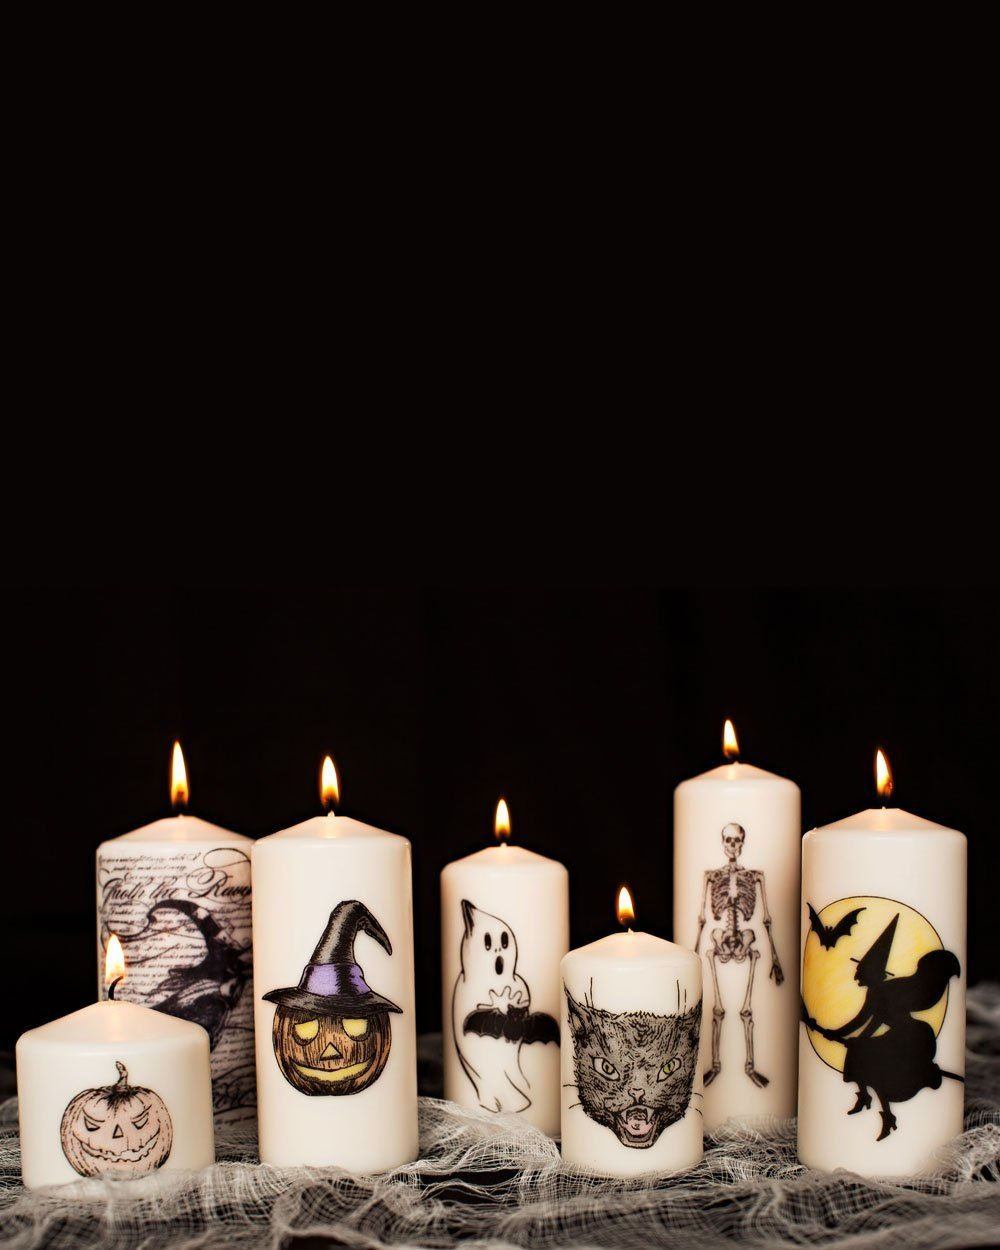 Reader Krys Shows You How To Make These Halloween Themed Diy Pillar Candles For The Holiday You Choose Your Image And Use A Simple Technique To Make Your